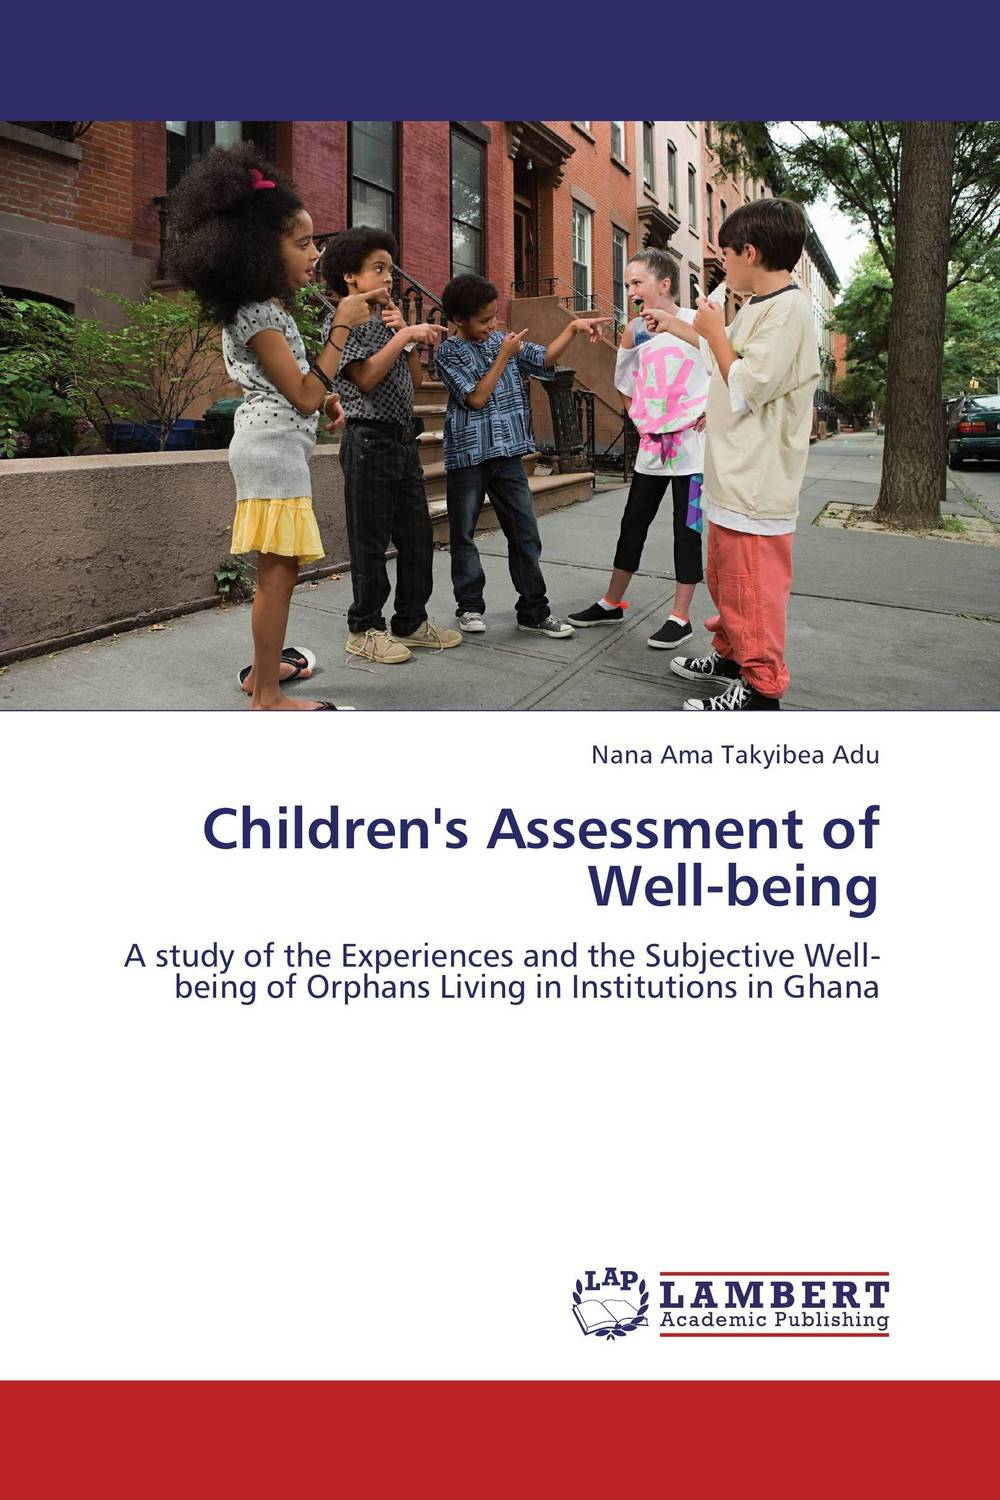 Children's Assessment of Well-being marvin tolentino and angelo dullas subjective well being and farming experiences of filipino children